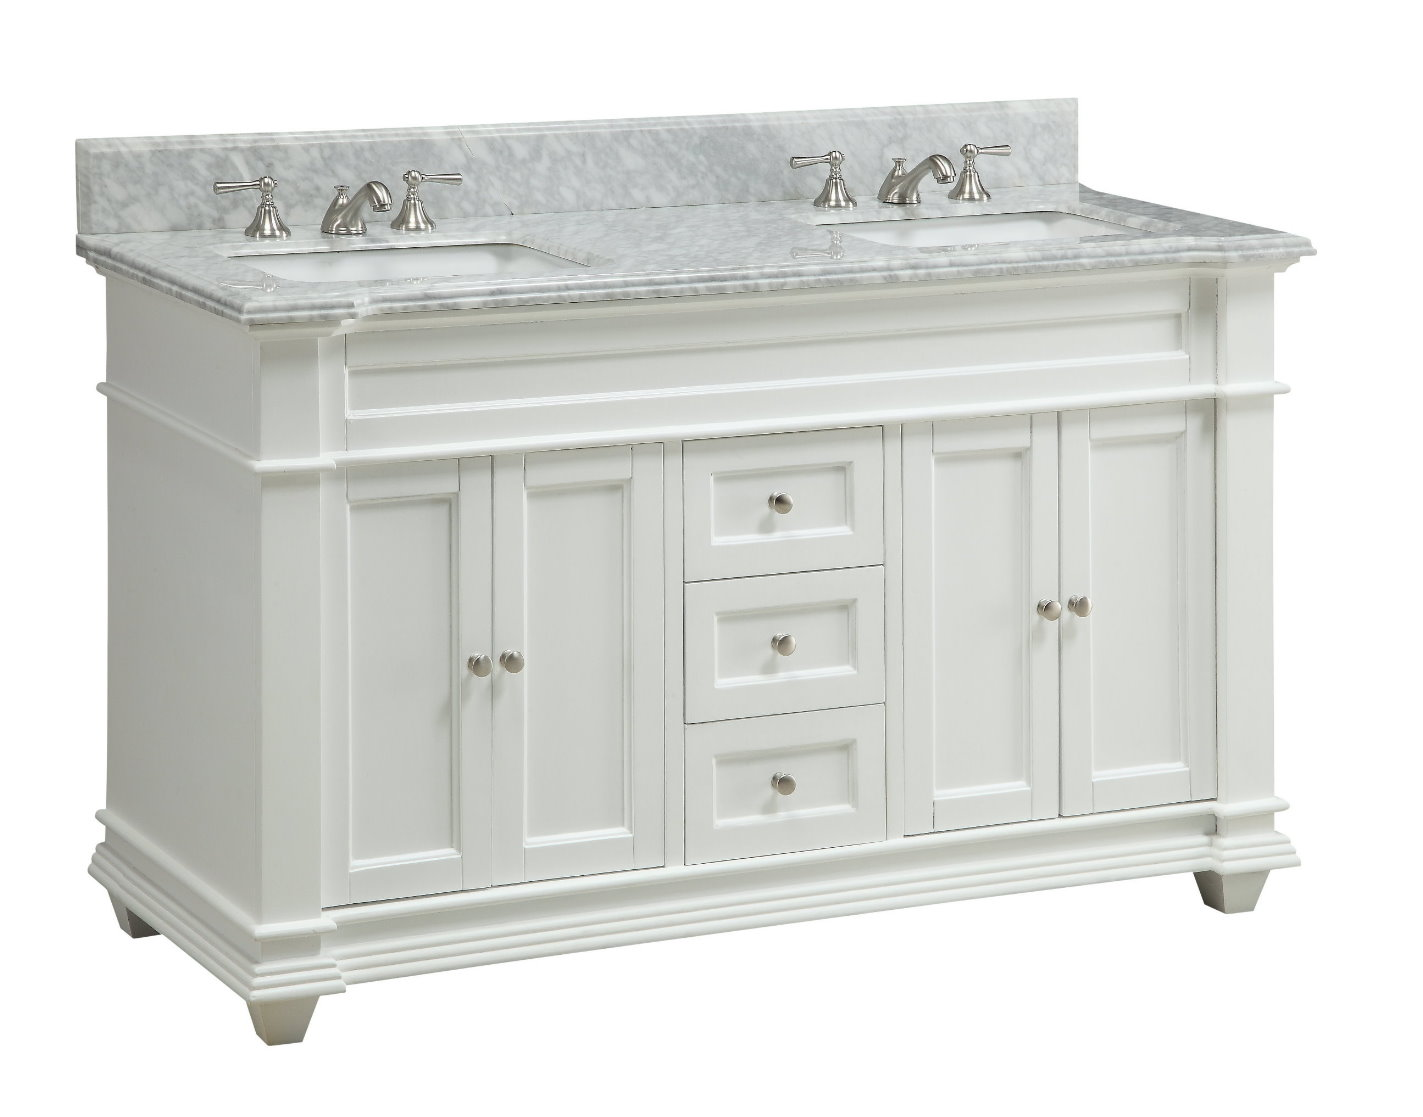 Lastest Natural Granite Top 60inch Double Sink Bathroom Vanity In White